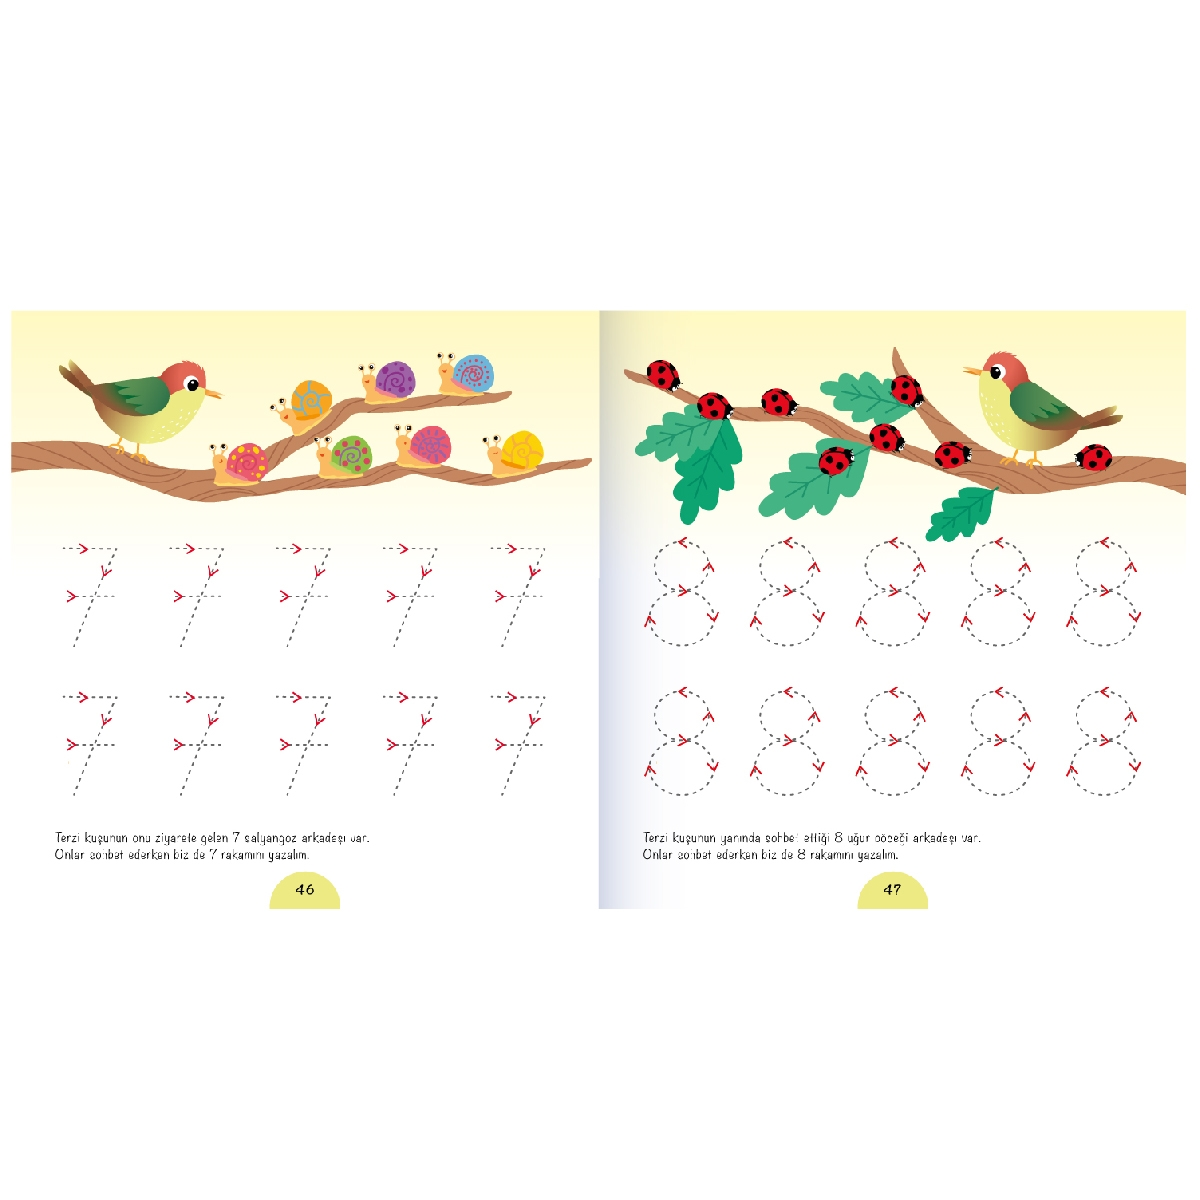 'The Tailor Bird is Sewing Up' Drawing Book for Kids